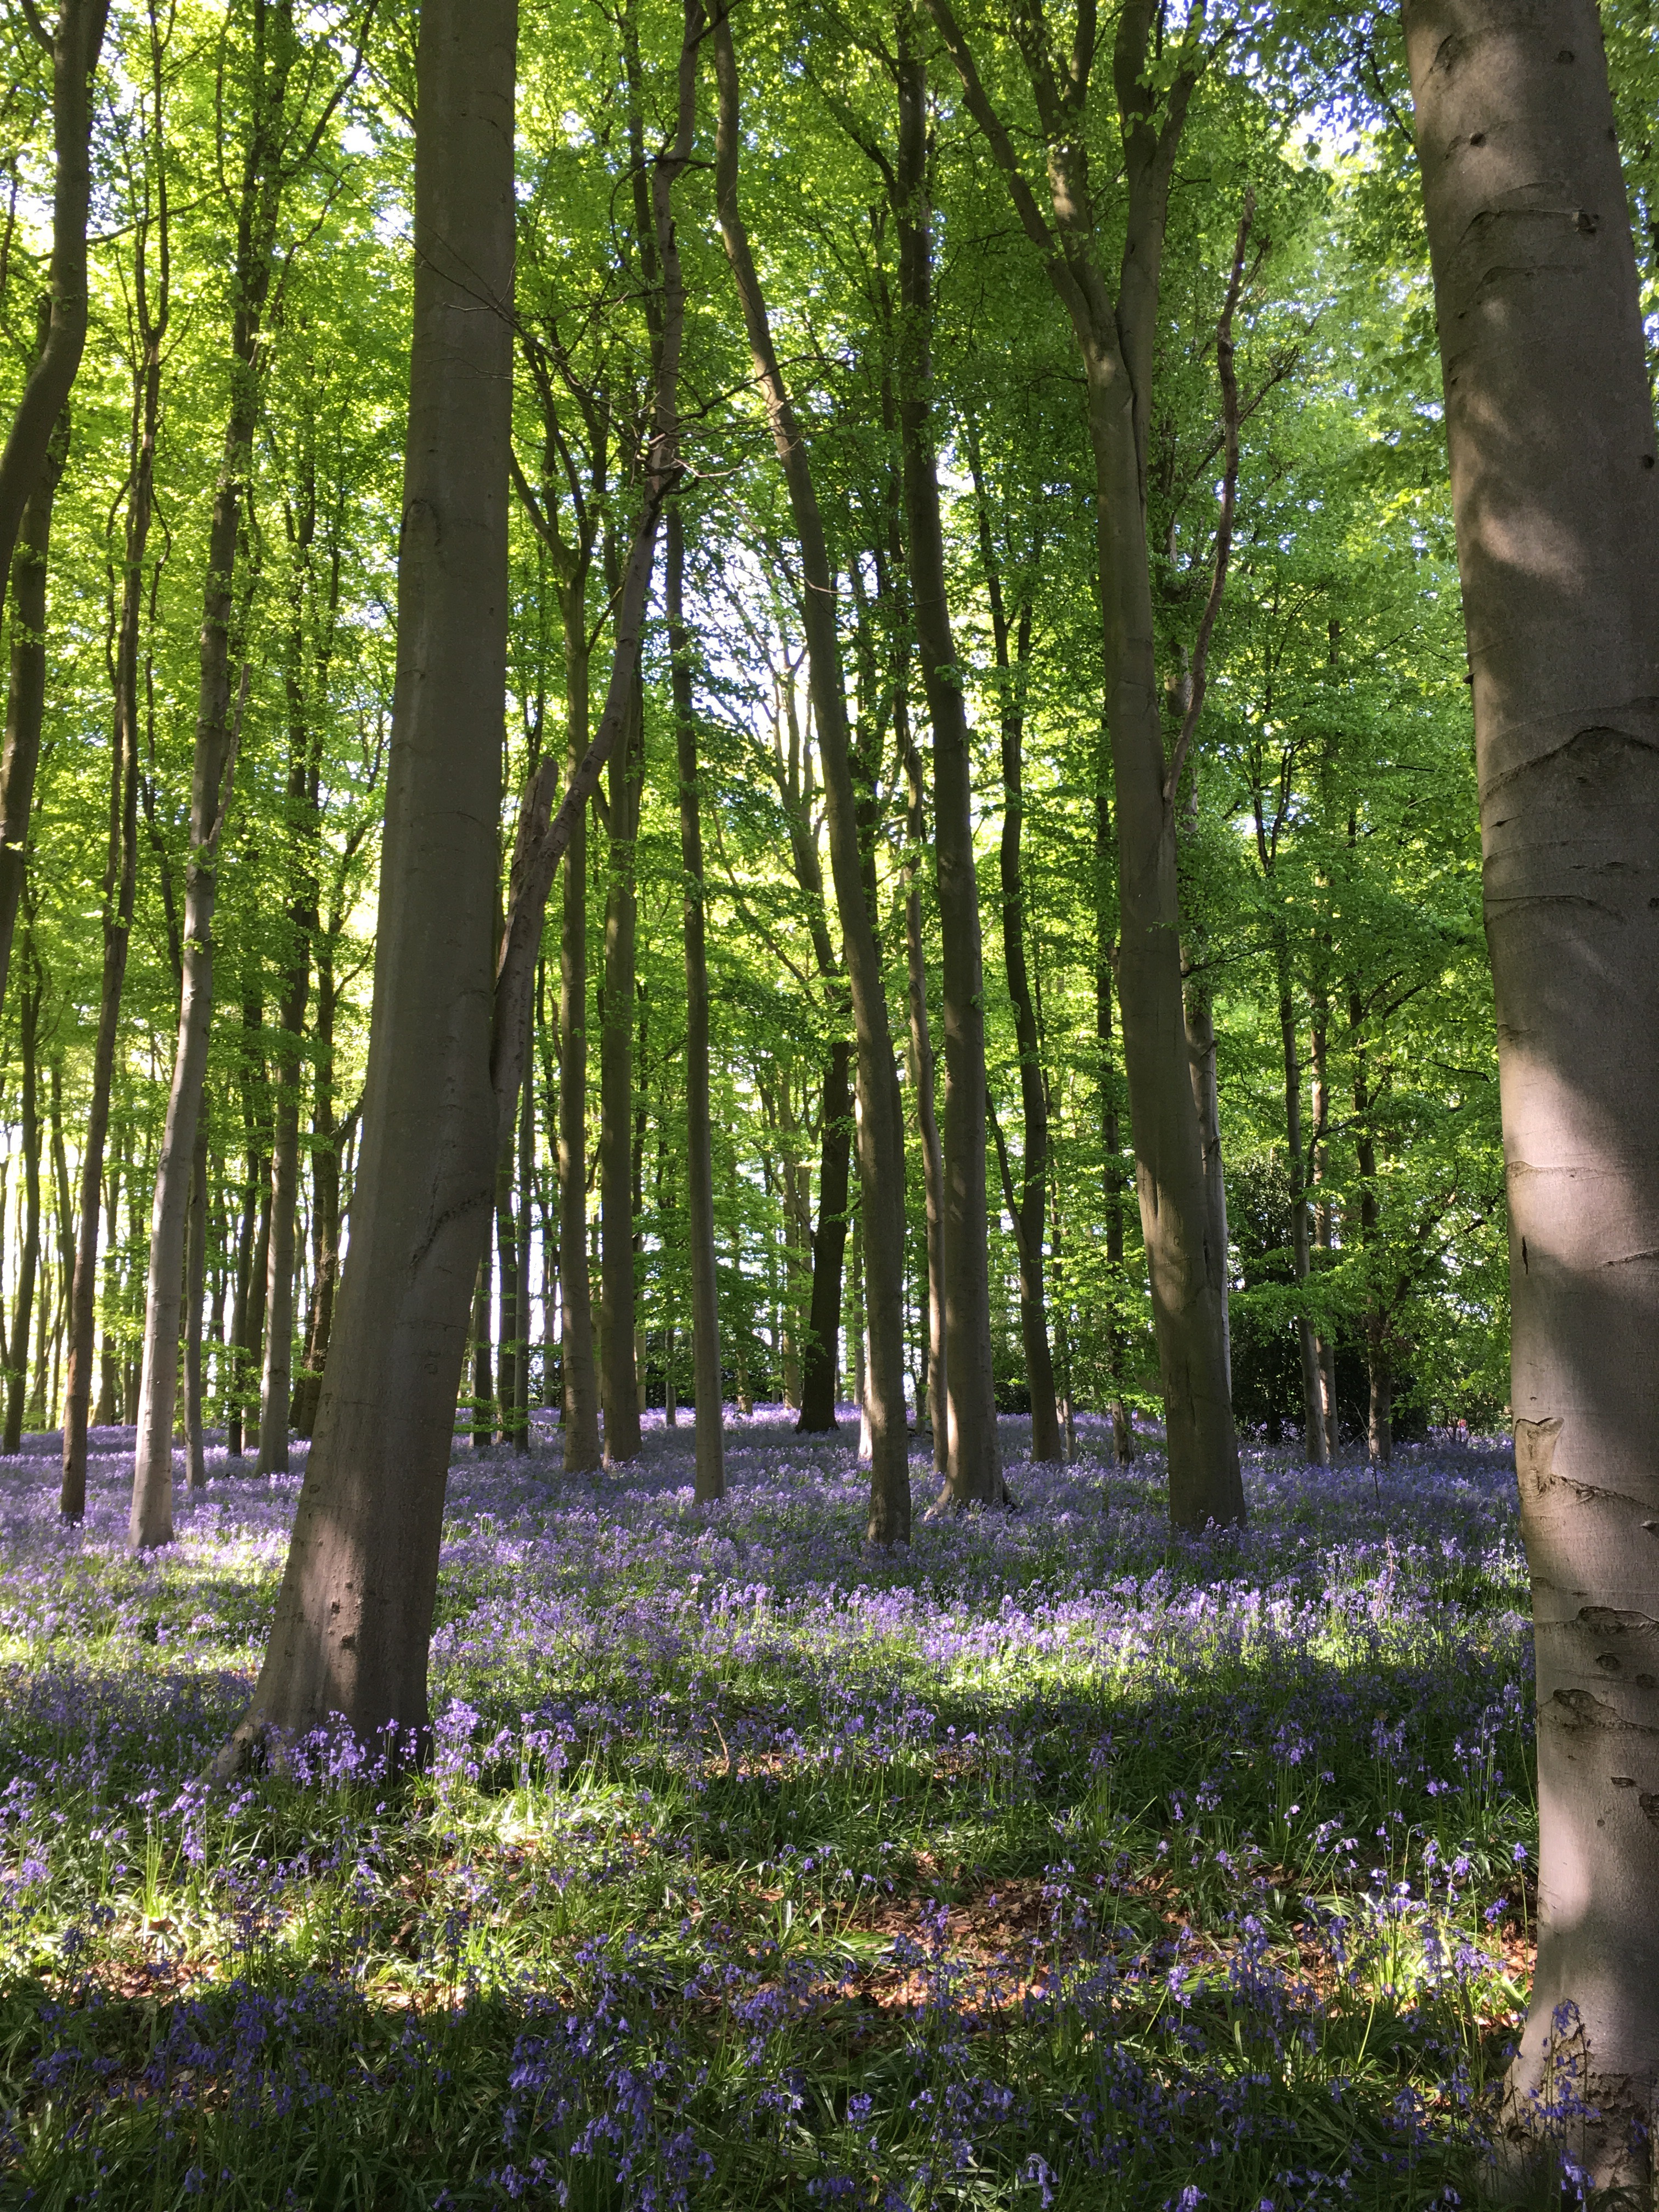 Coton Manors Five Acre Bluebell Wood Open Until 15th May 12 Noon To 530